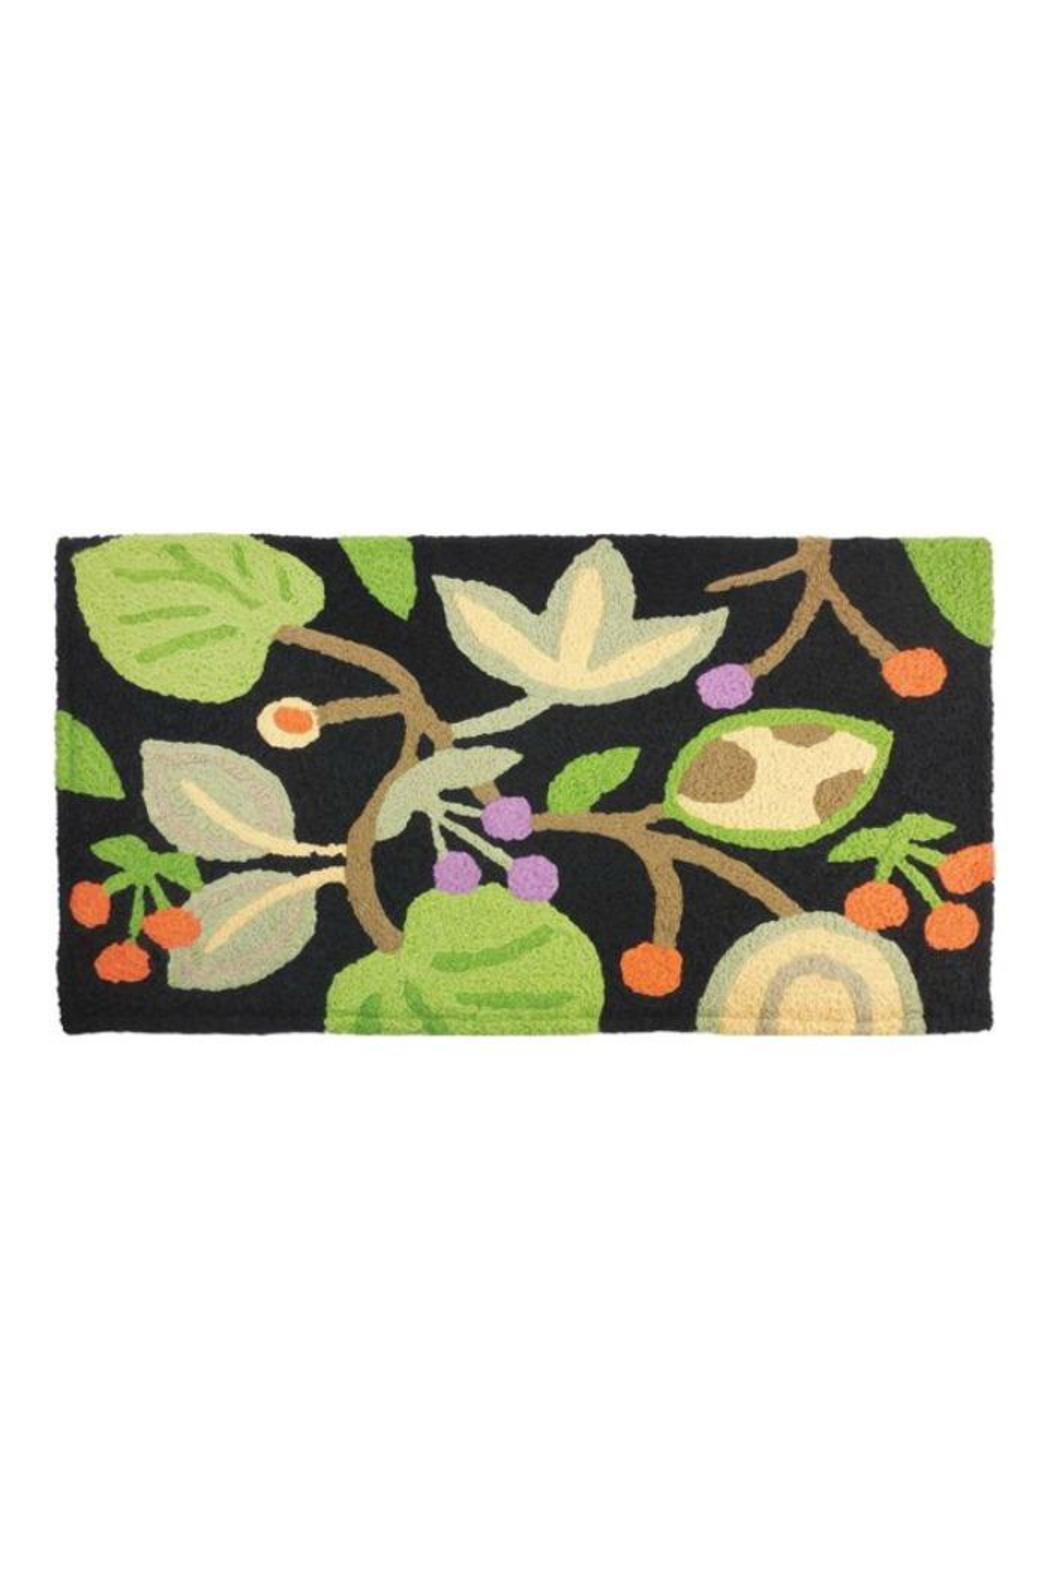 Jelly Bean Rugs Flora Floor Mat From Tennessee By Sherry S